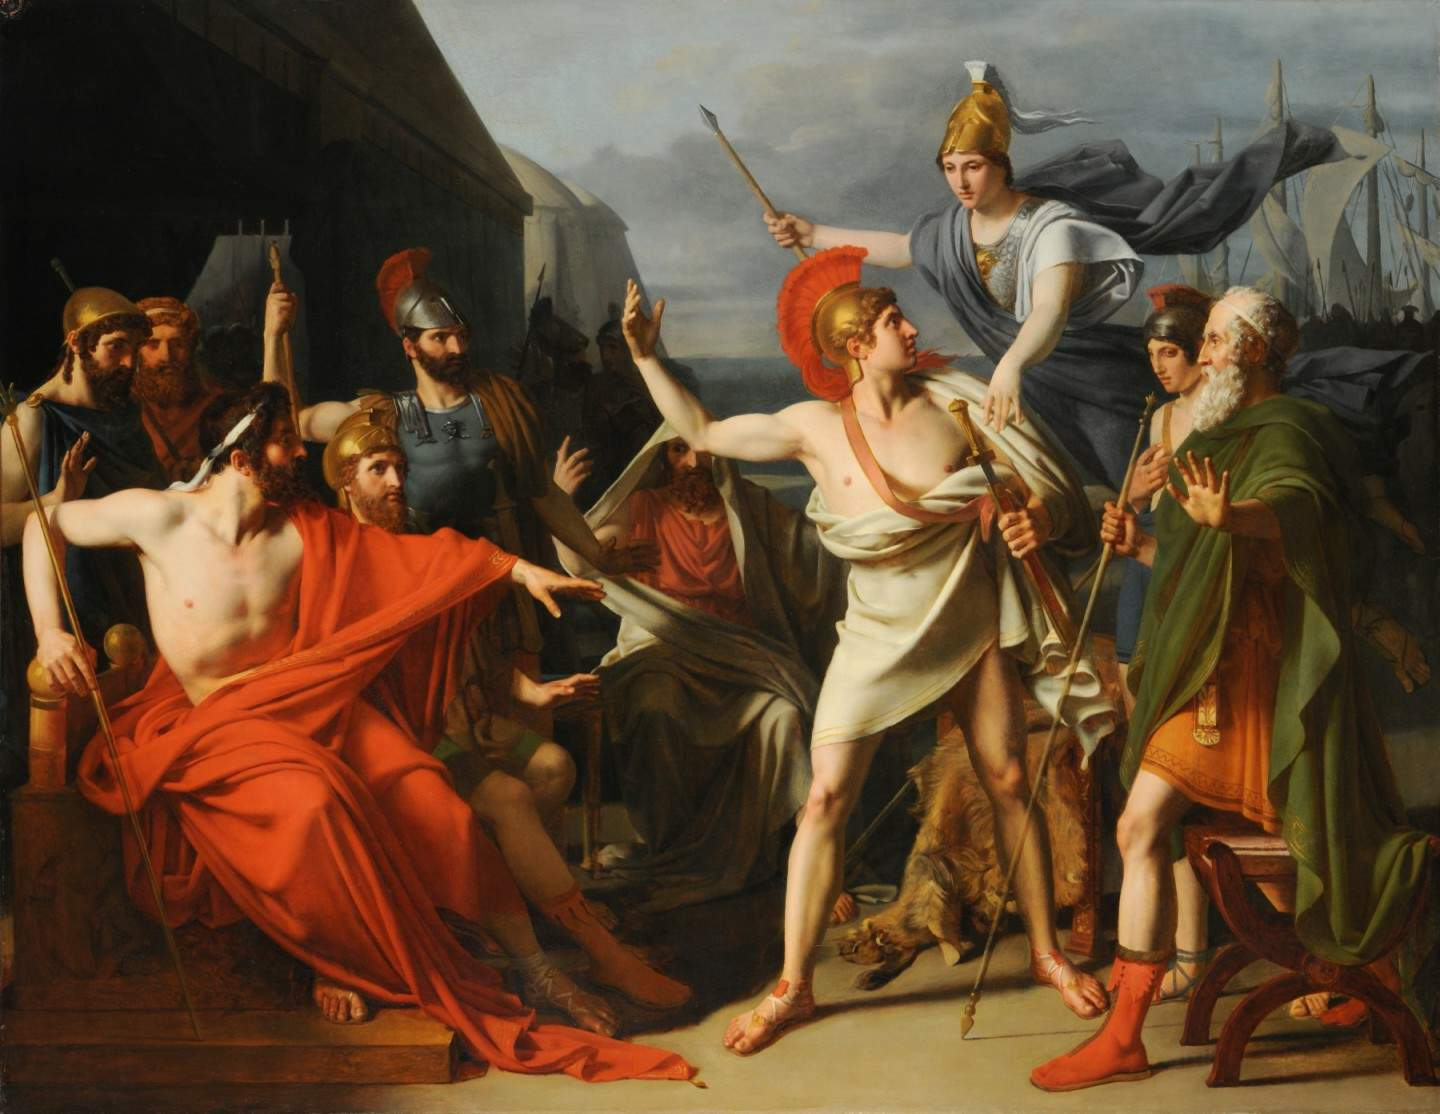 an analysis of the characters of achilles and diomedes in the iliad an epic poem by homer